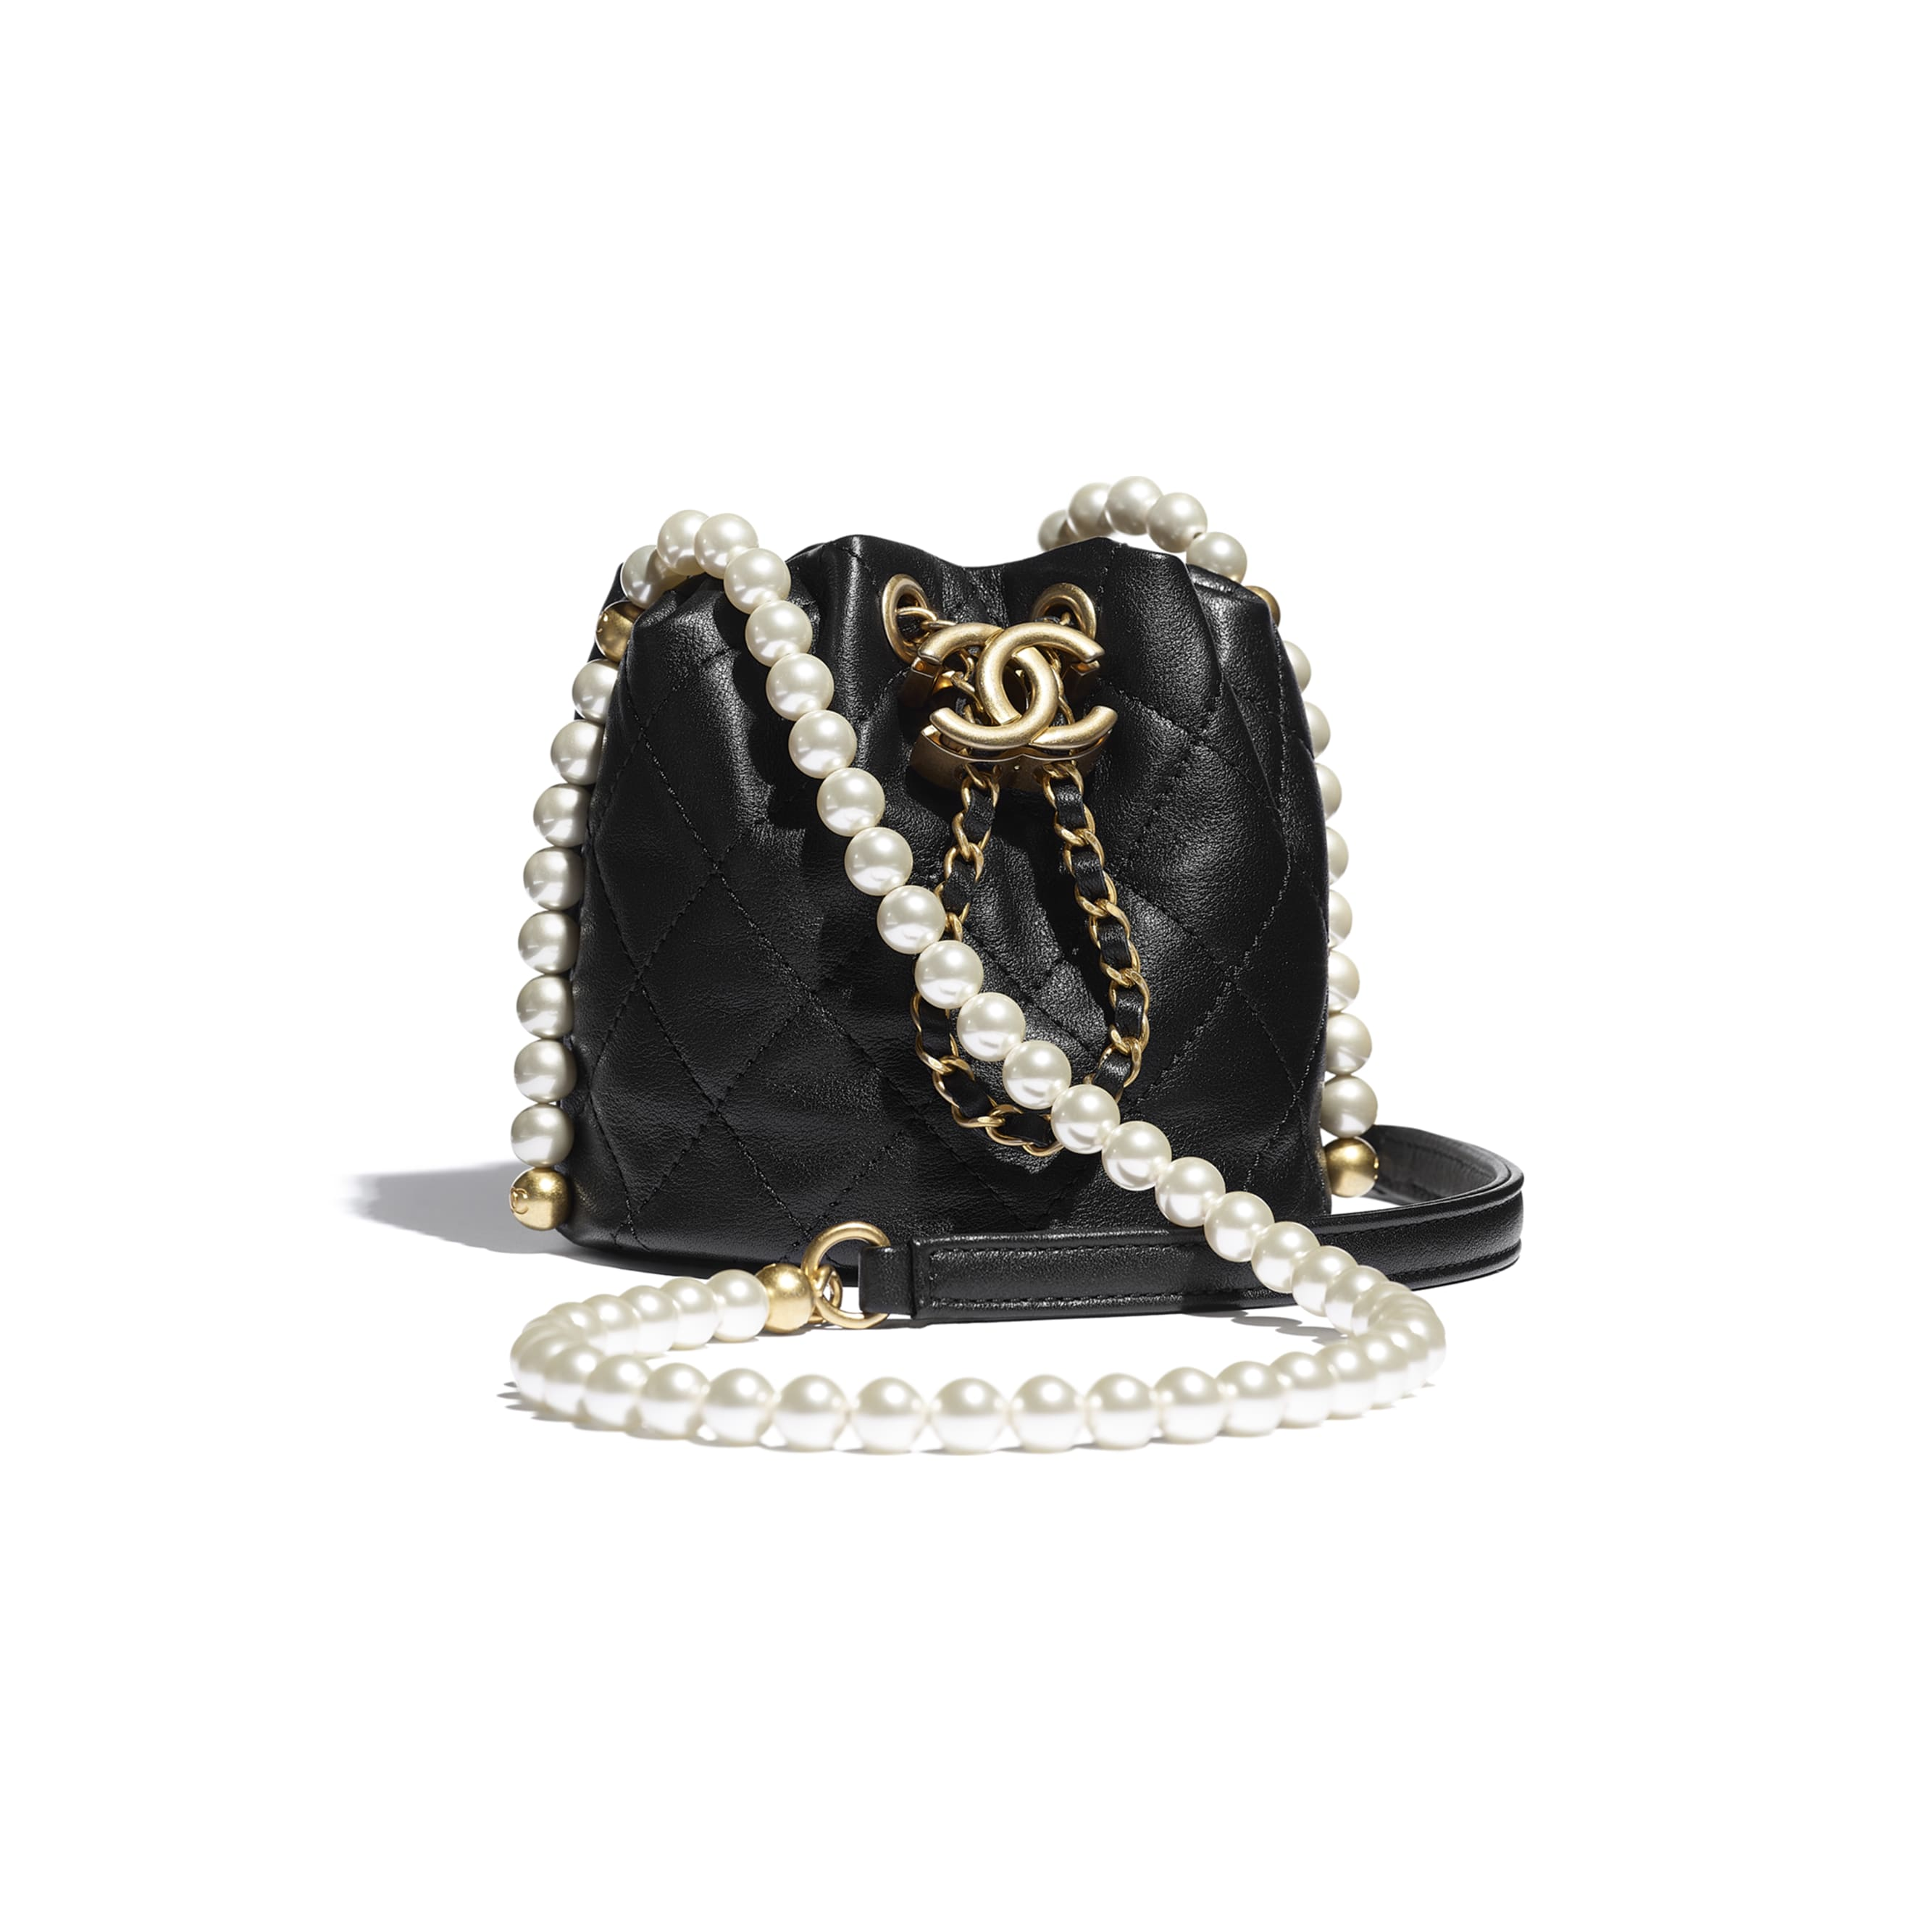 Mini Drawstring Bag - Black - Calfskin, Imitation Pearls & Gold-Tone Metal - CHANEL - Default view - see standard sized version